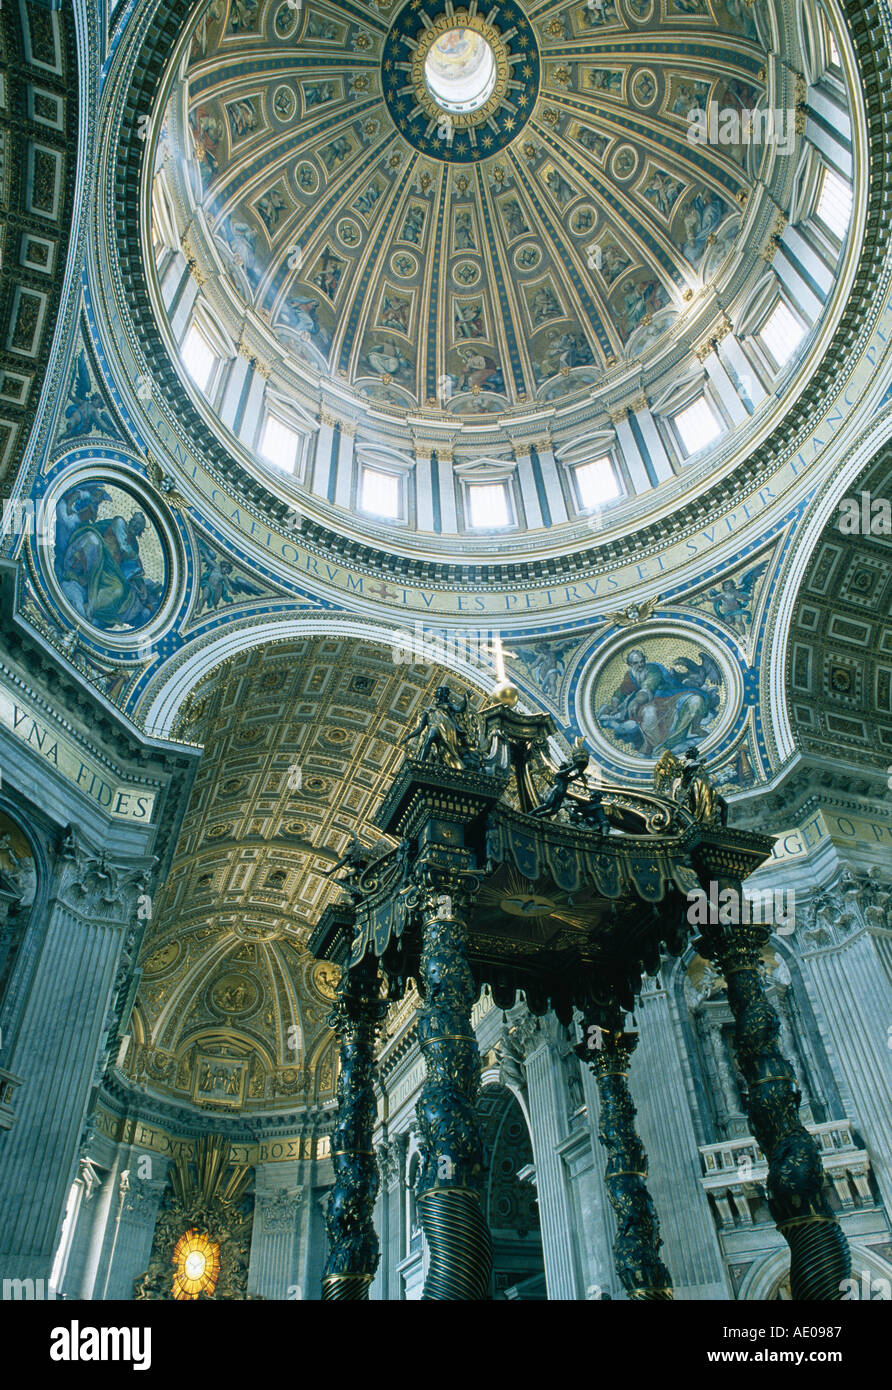 Bernini´s Altar and Michelangelo´s Dome St Peter´s Basilica Rome Italy - Stock Image